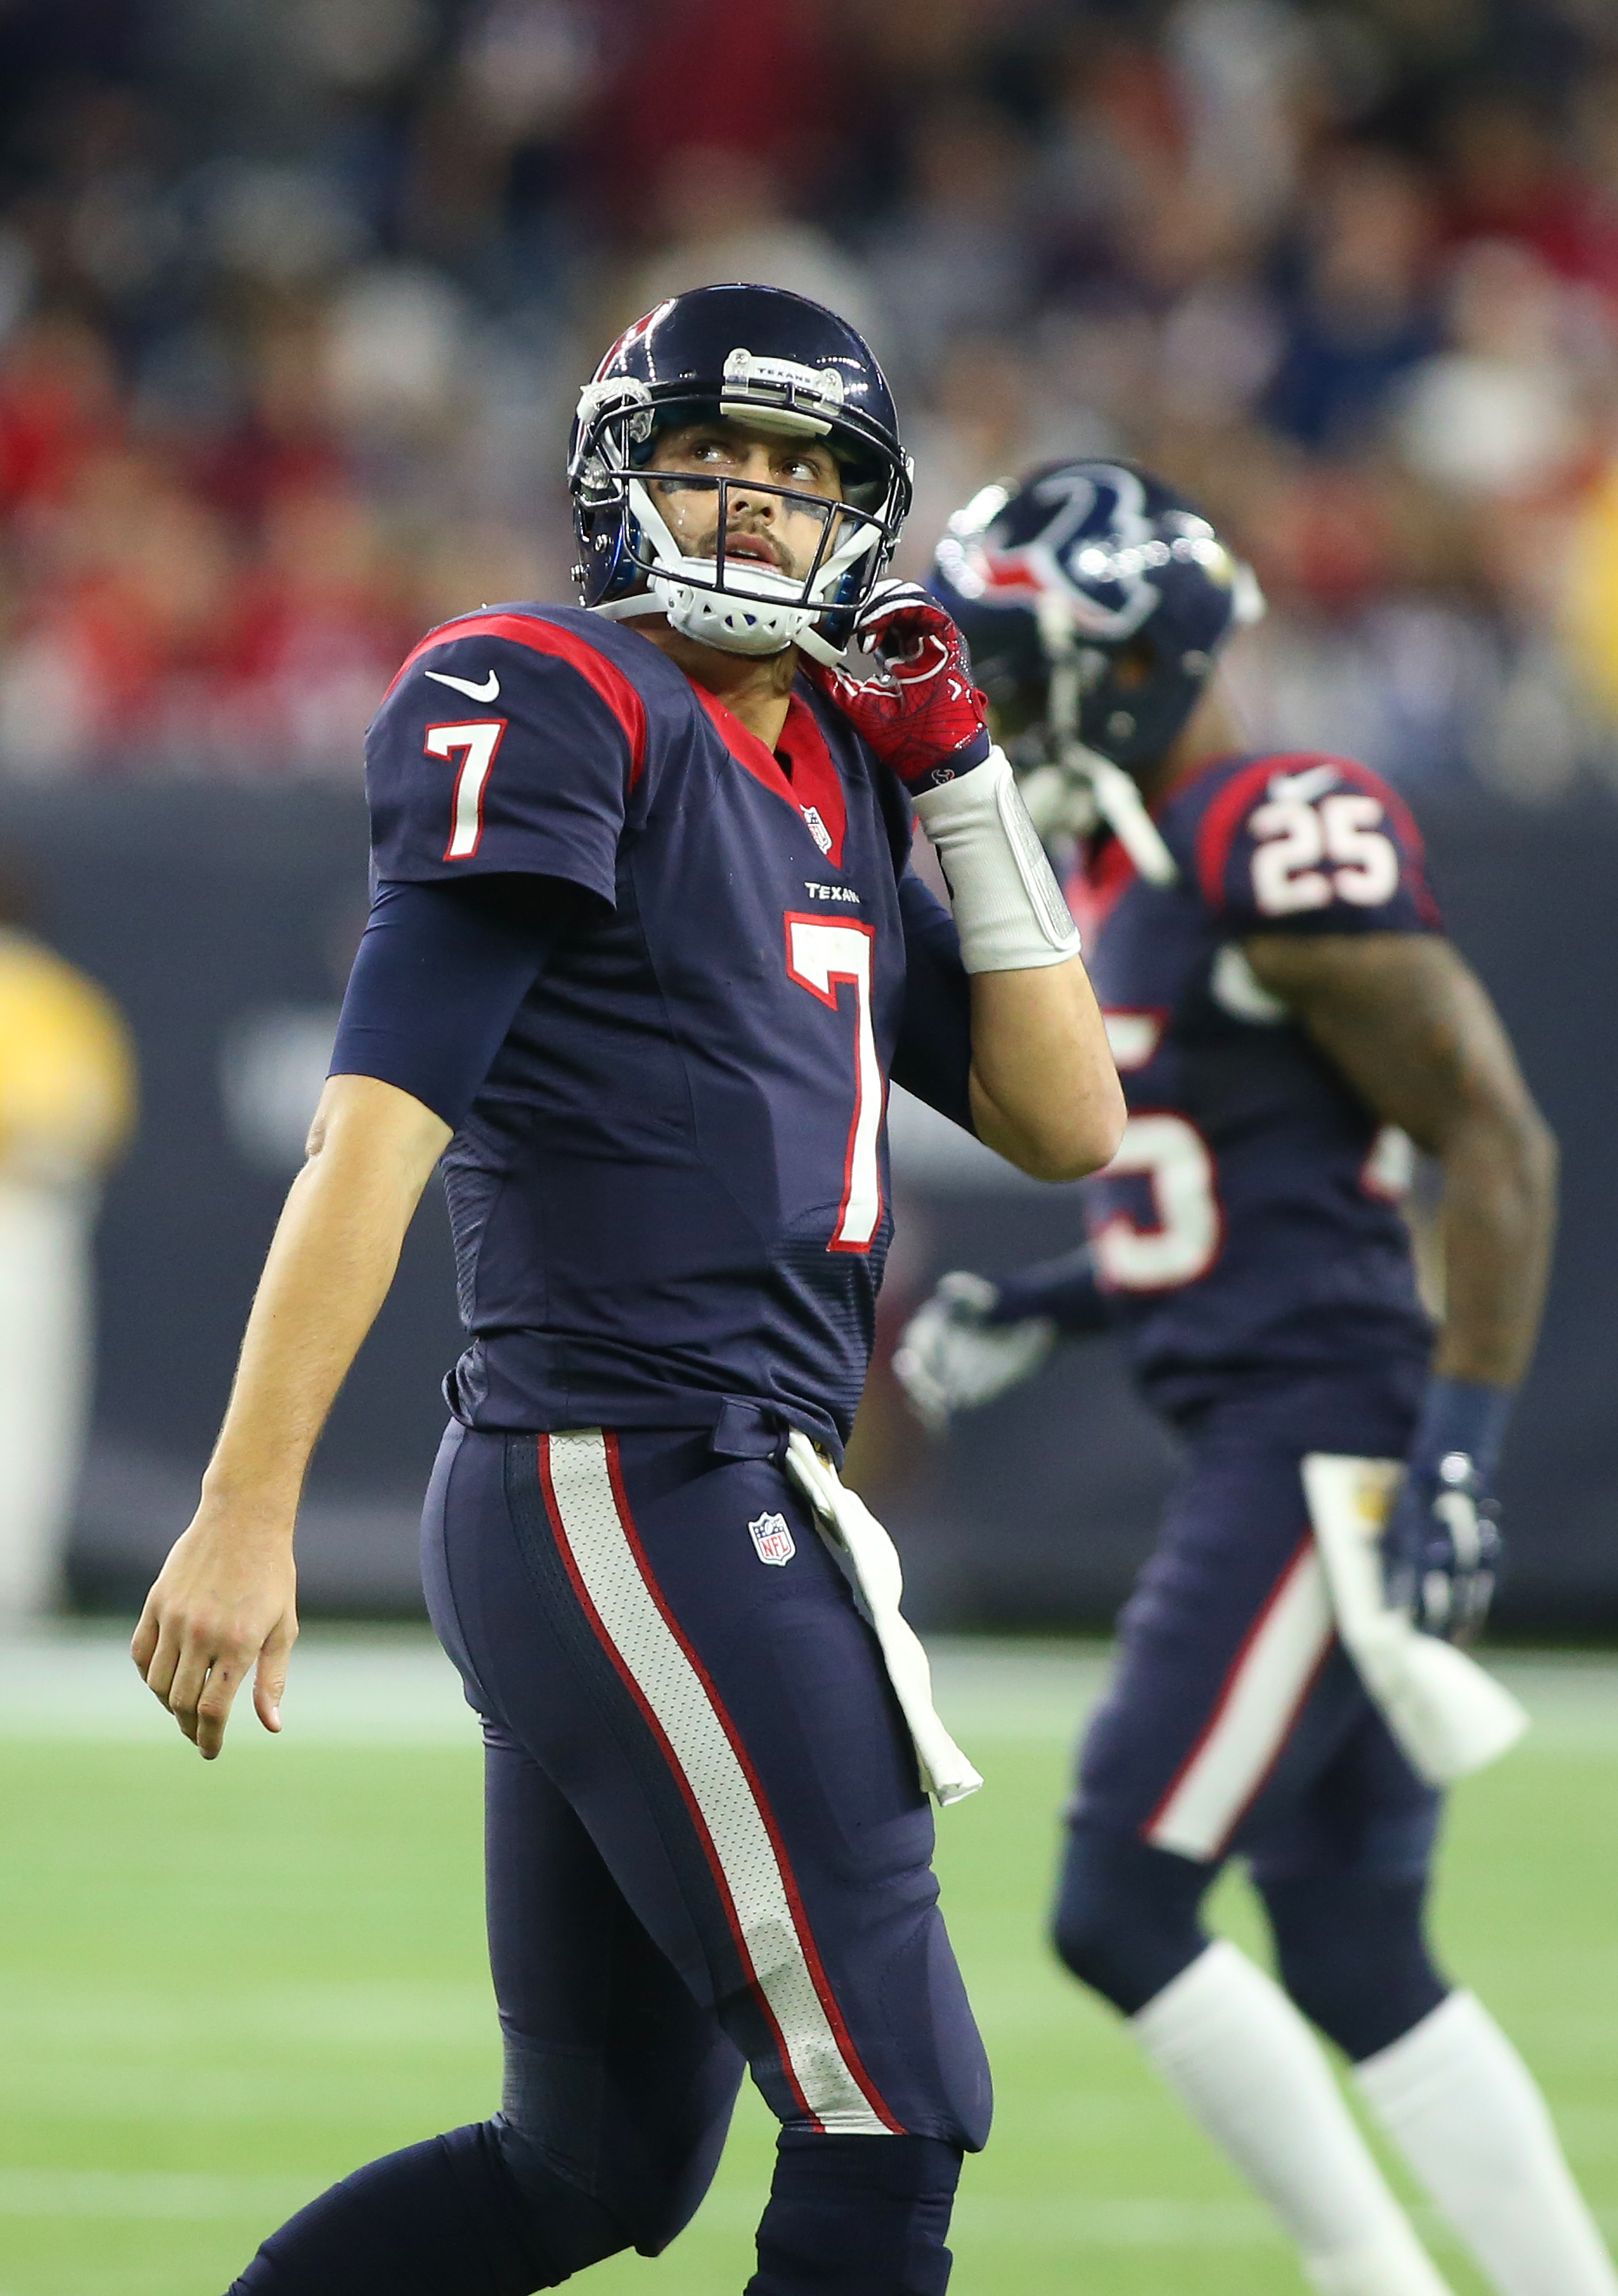 The less said about the last Texans-Chiefs game, the better.